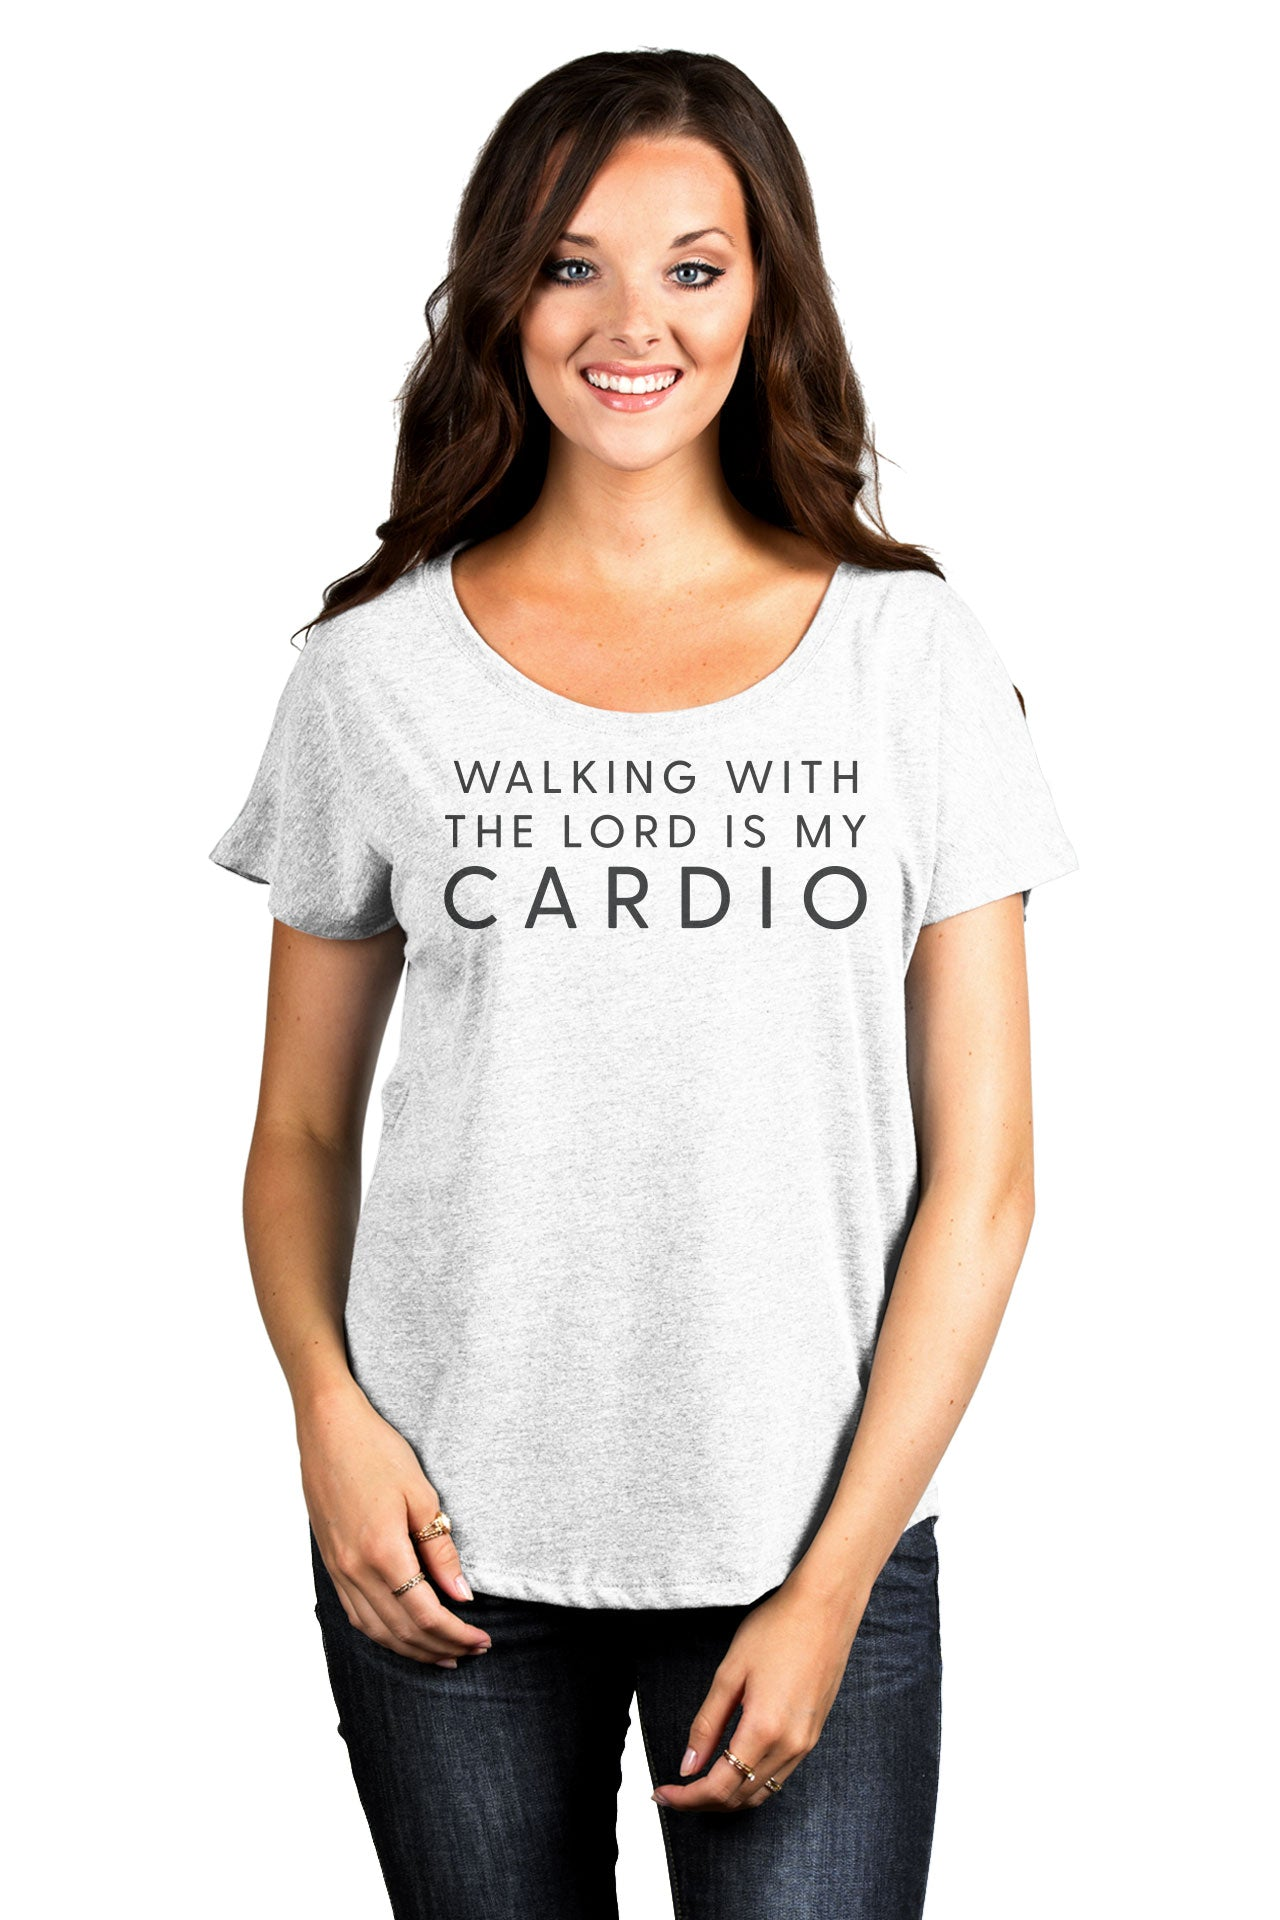 Walking With The Lord Is My Cardio Women's Relaxed Slouchy Dolman T-Shirt Tee Heather White